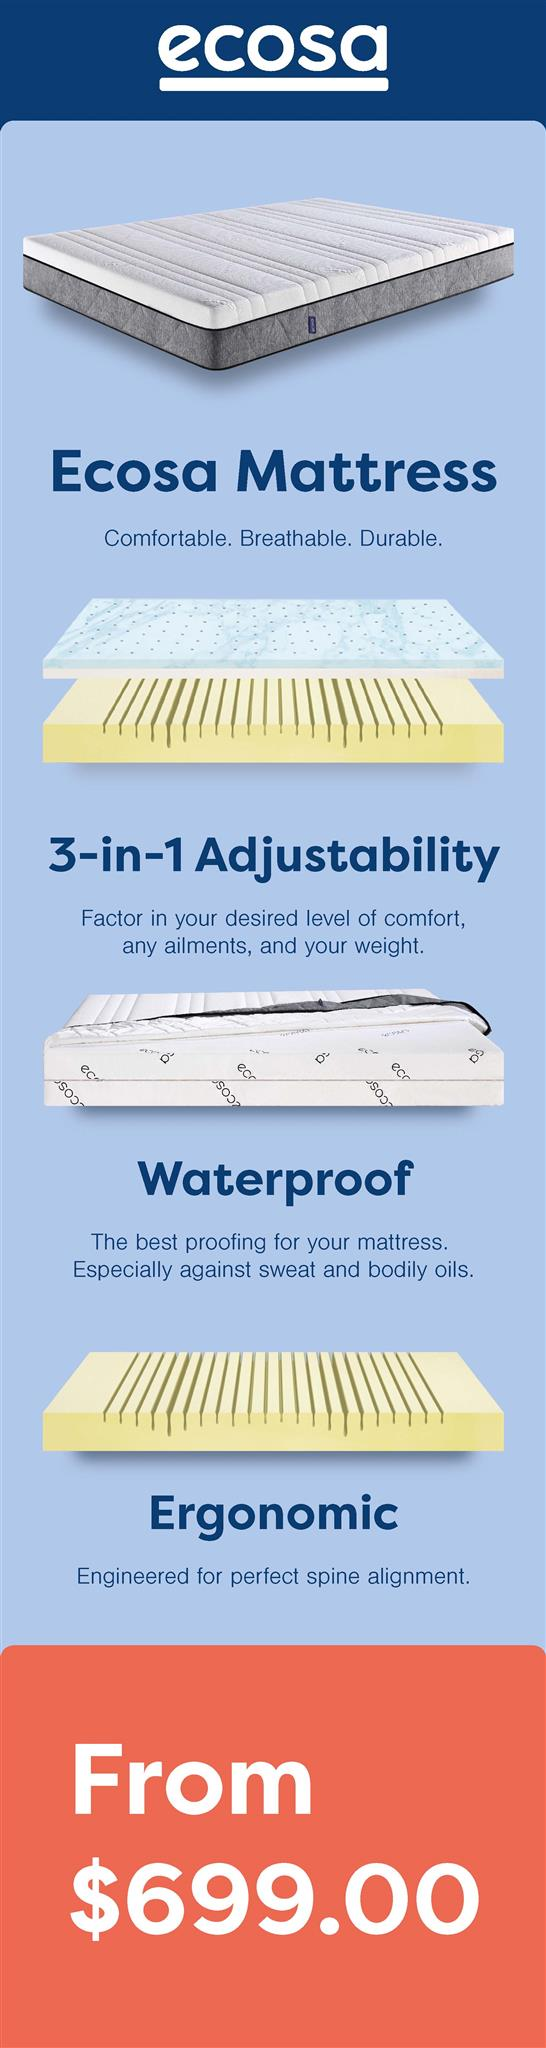 ecosa mattress super king